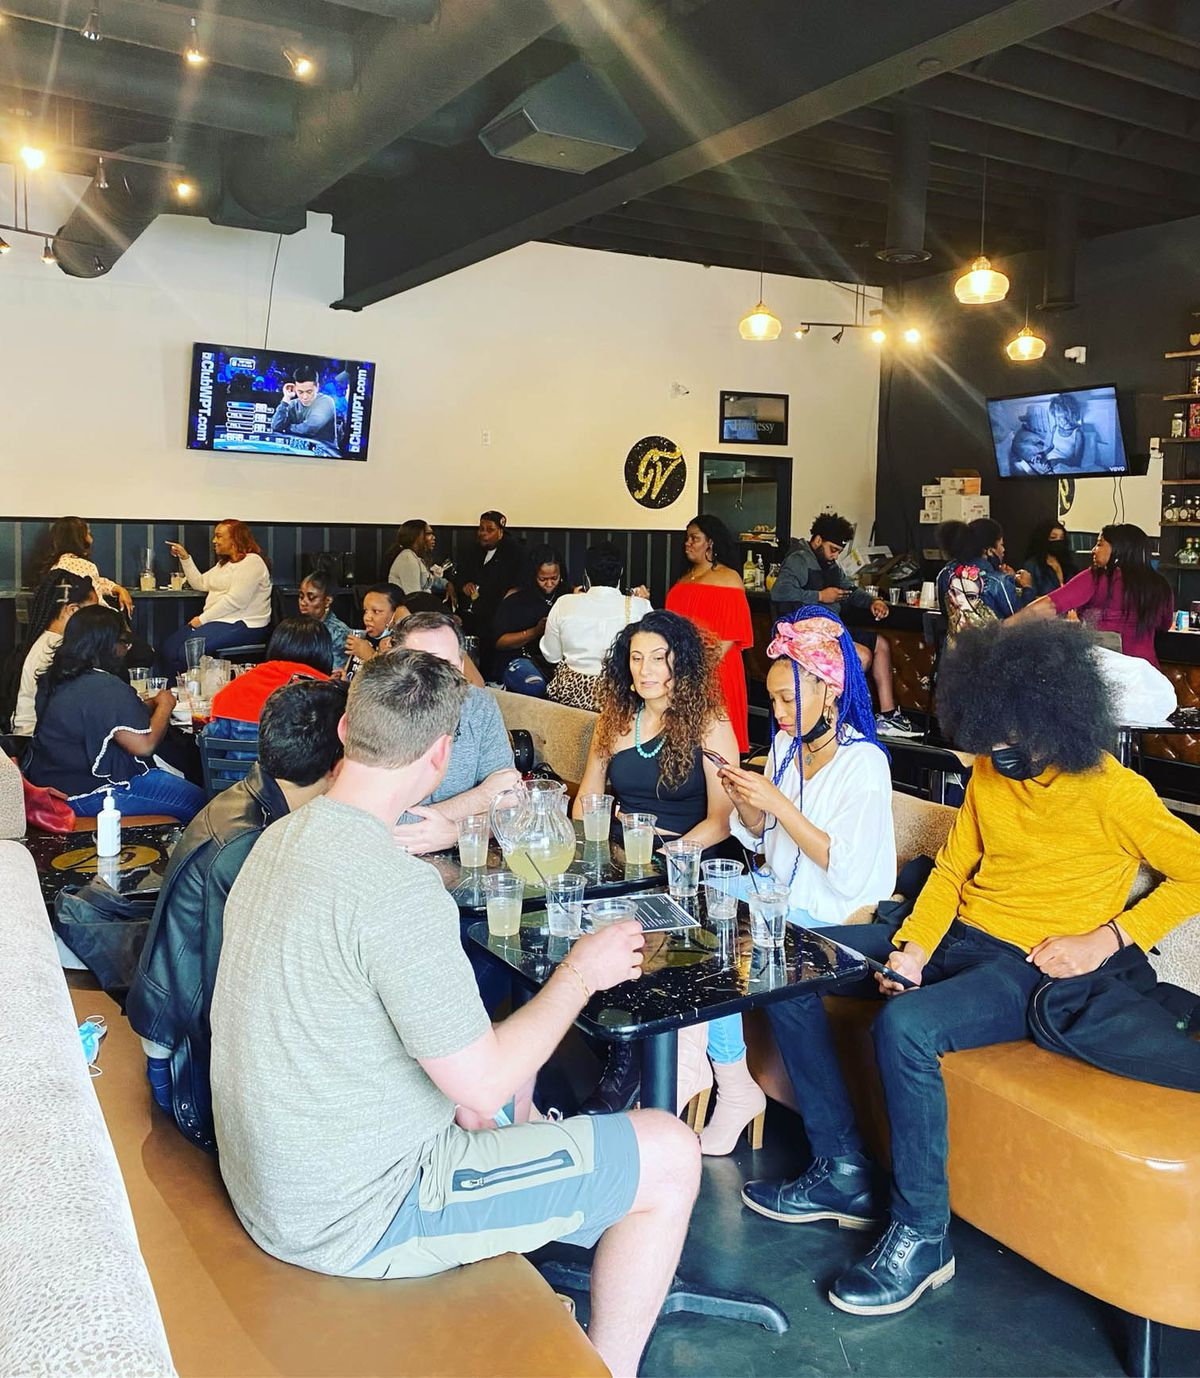 A crowd of people sitting on booths in a bar with drinks on the table and with two televisions on the wall